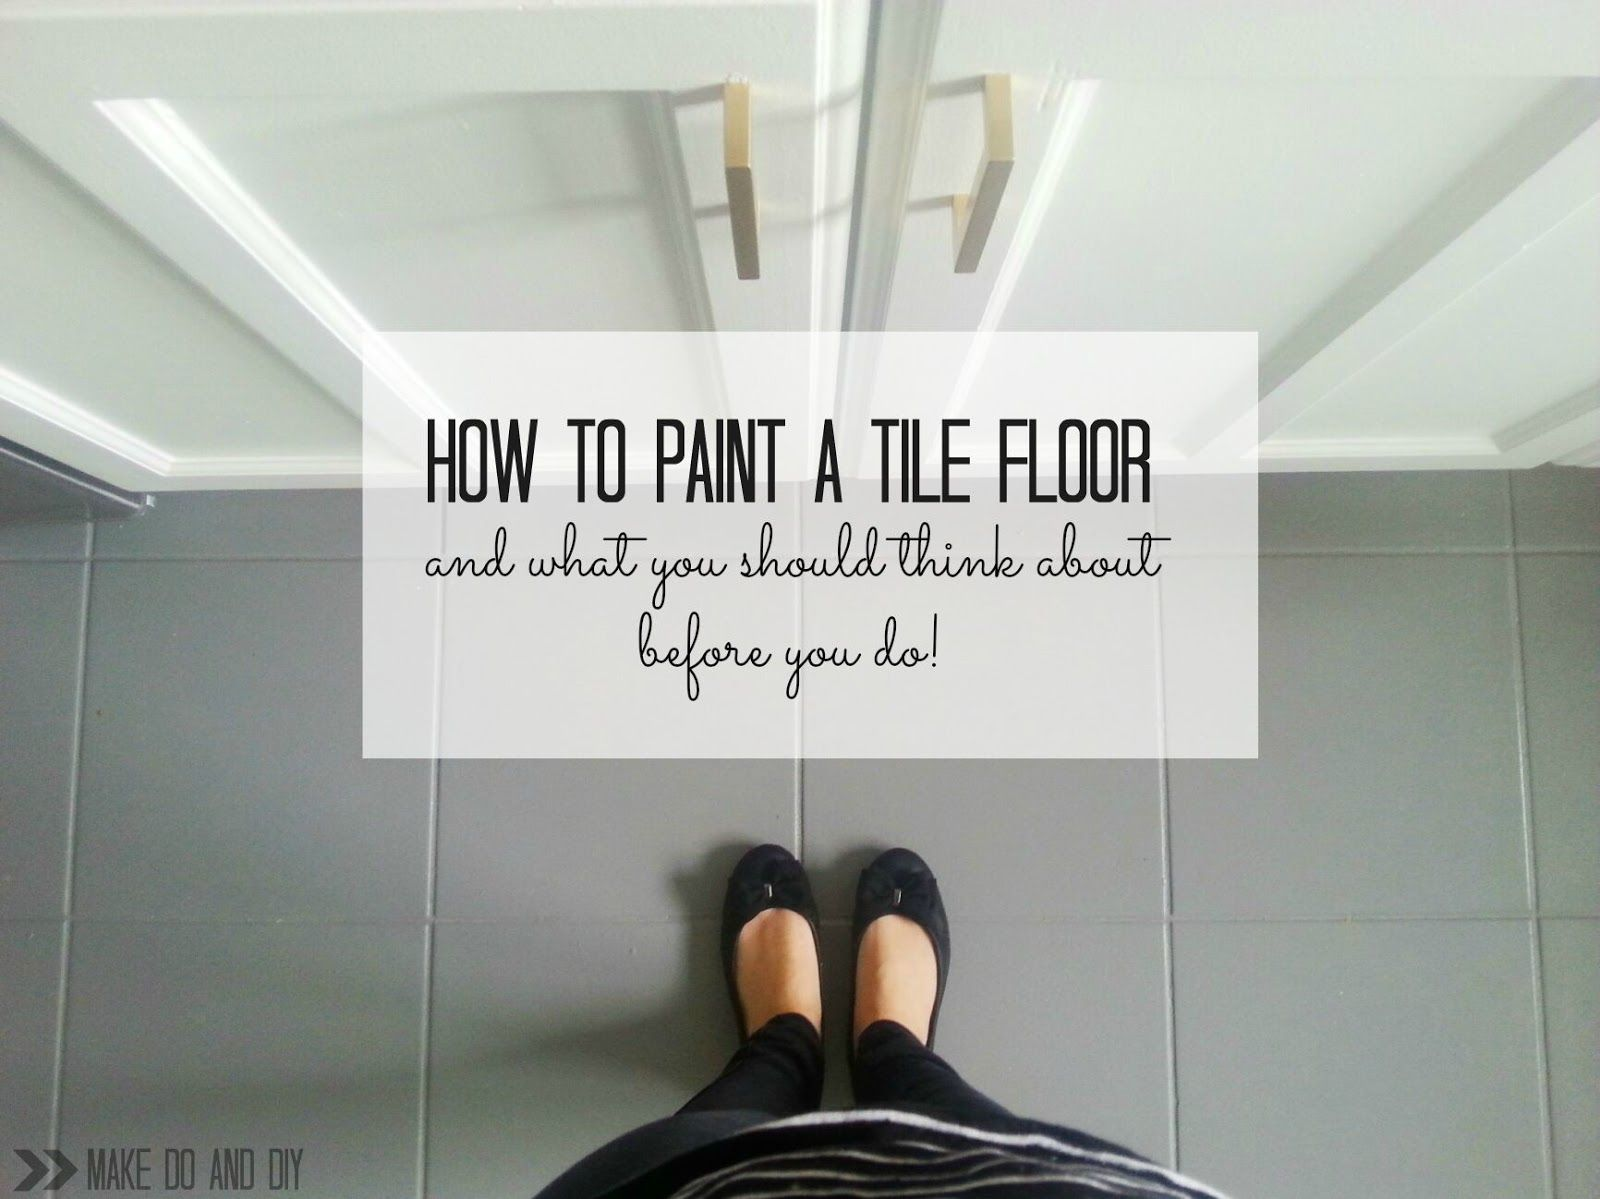 kitchen tiles floor how to paint a tile floor and what you should think about before you do